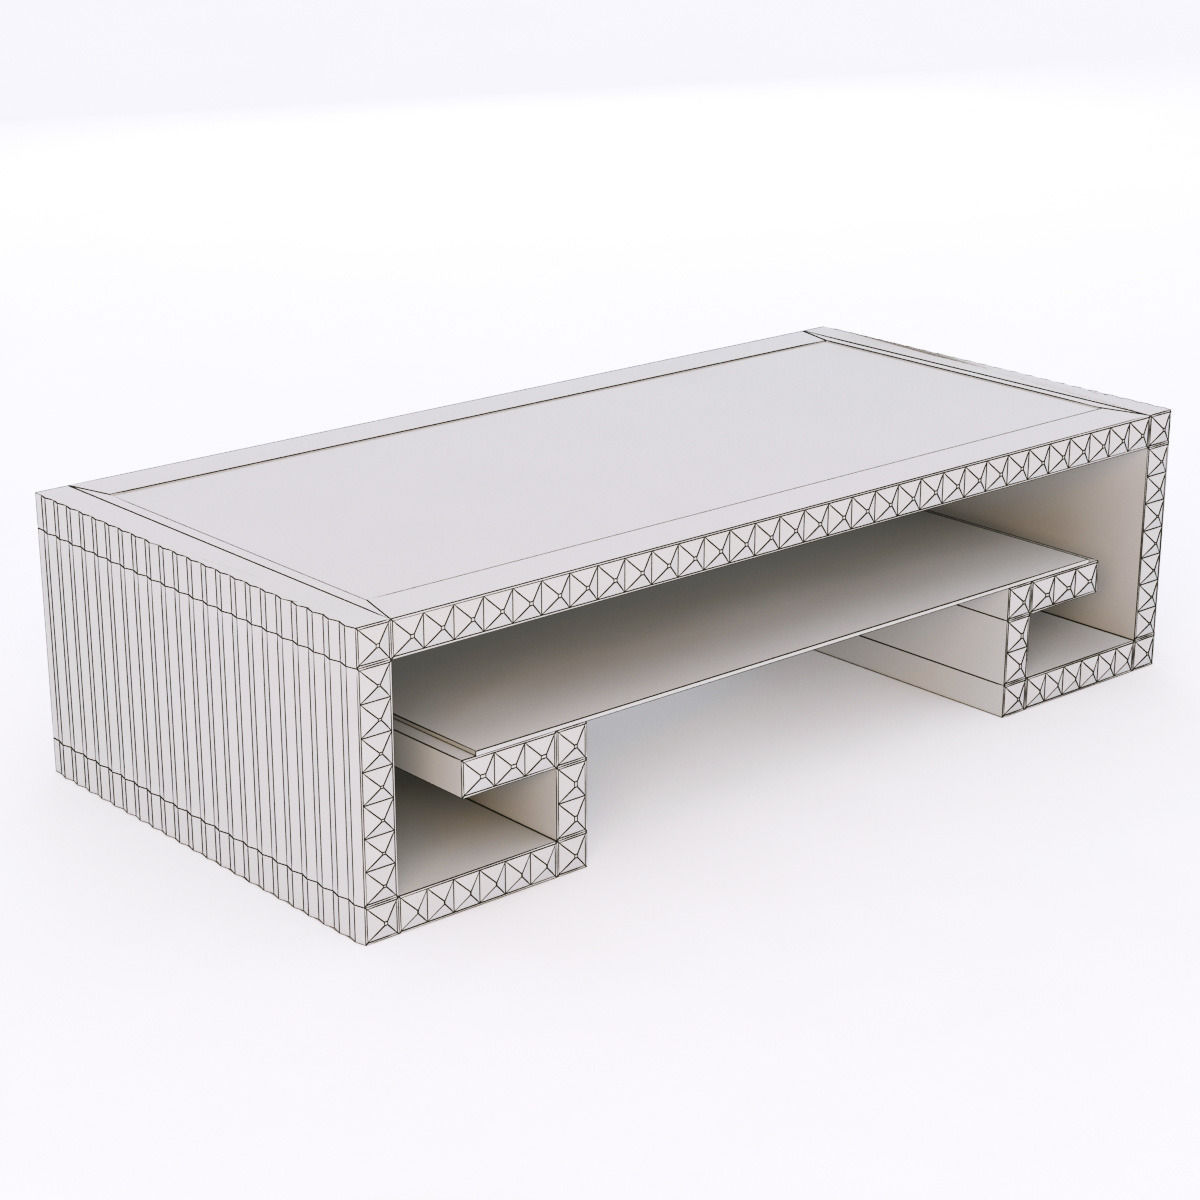 Francesco molon t502 coctaile table coffre 3d model for Table coffre